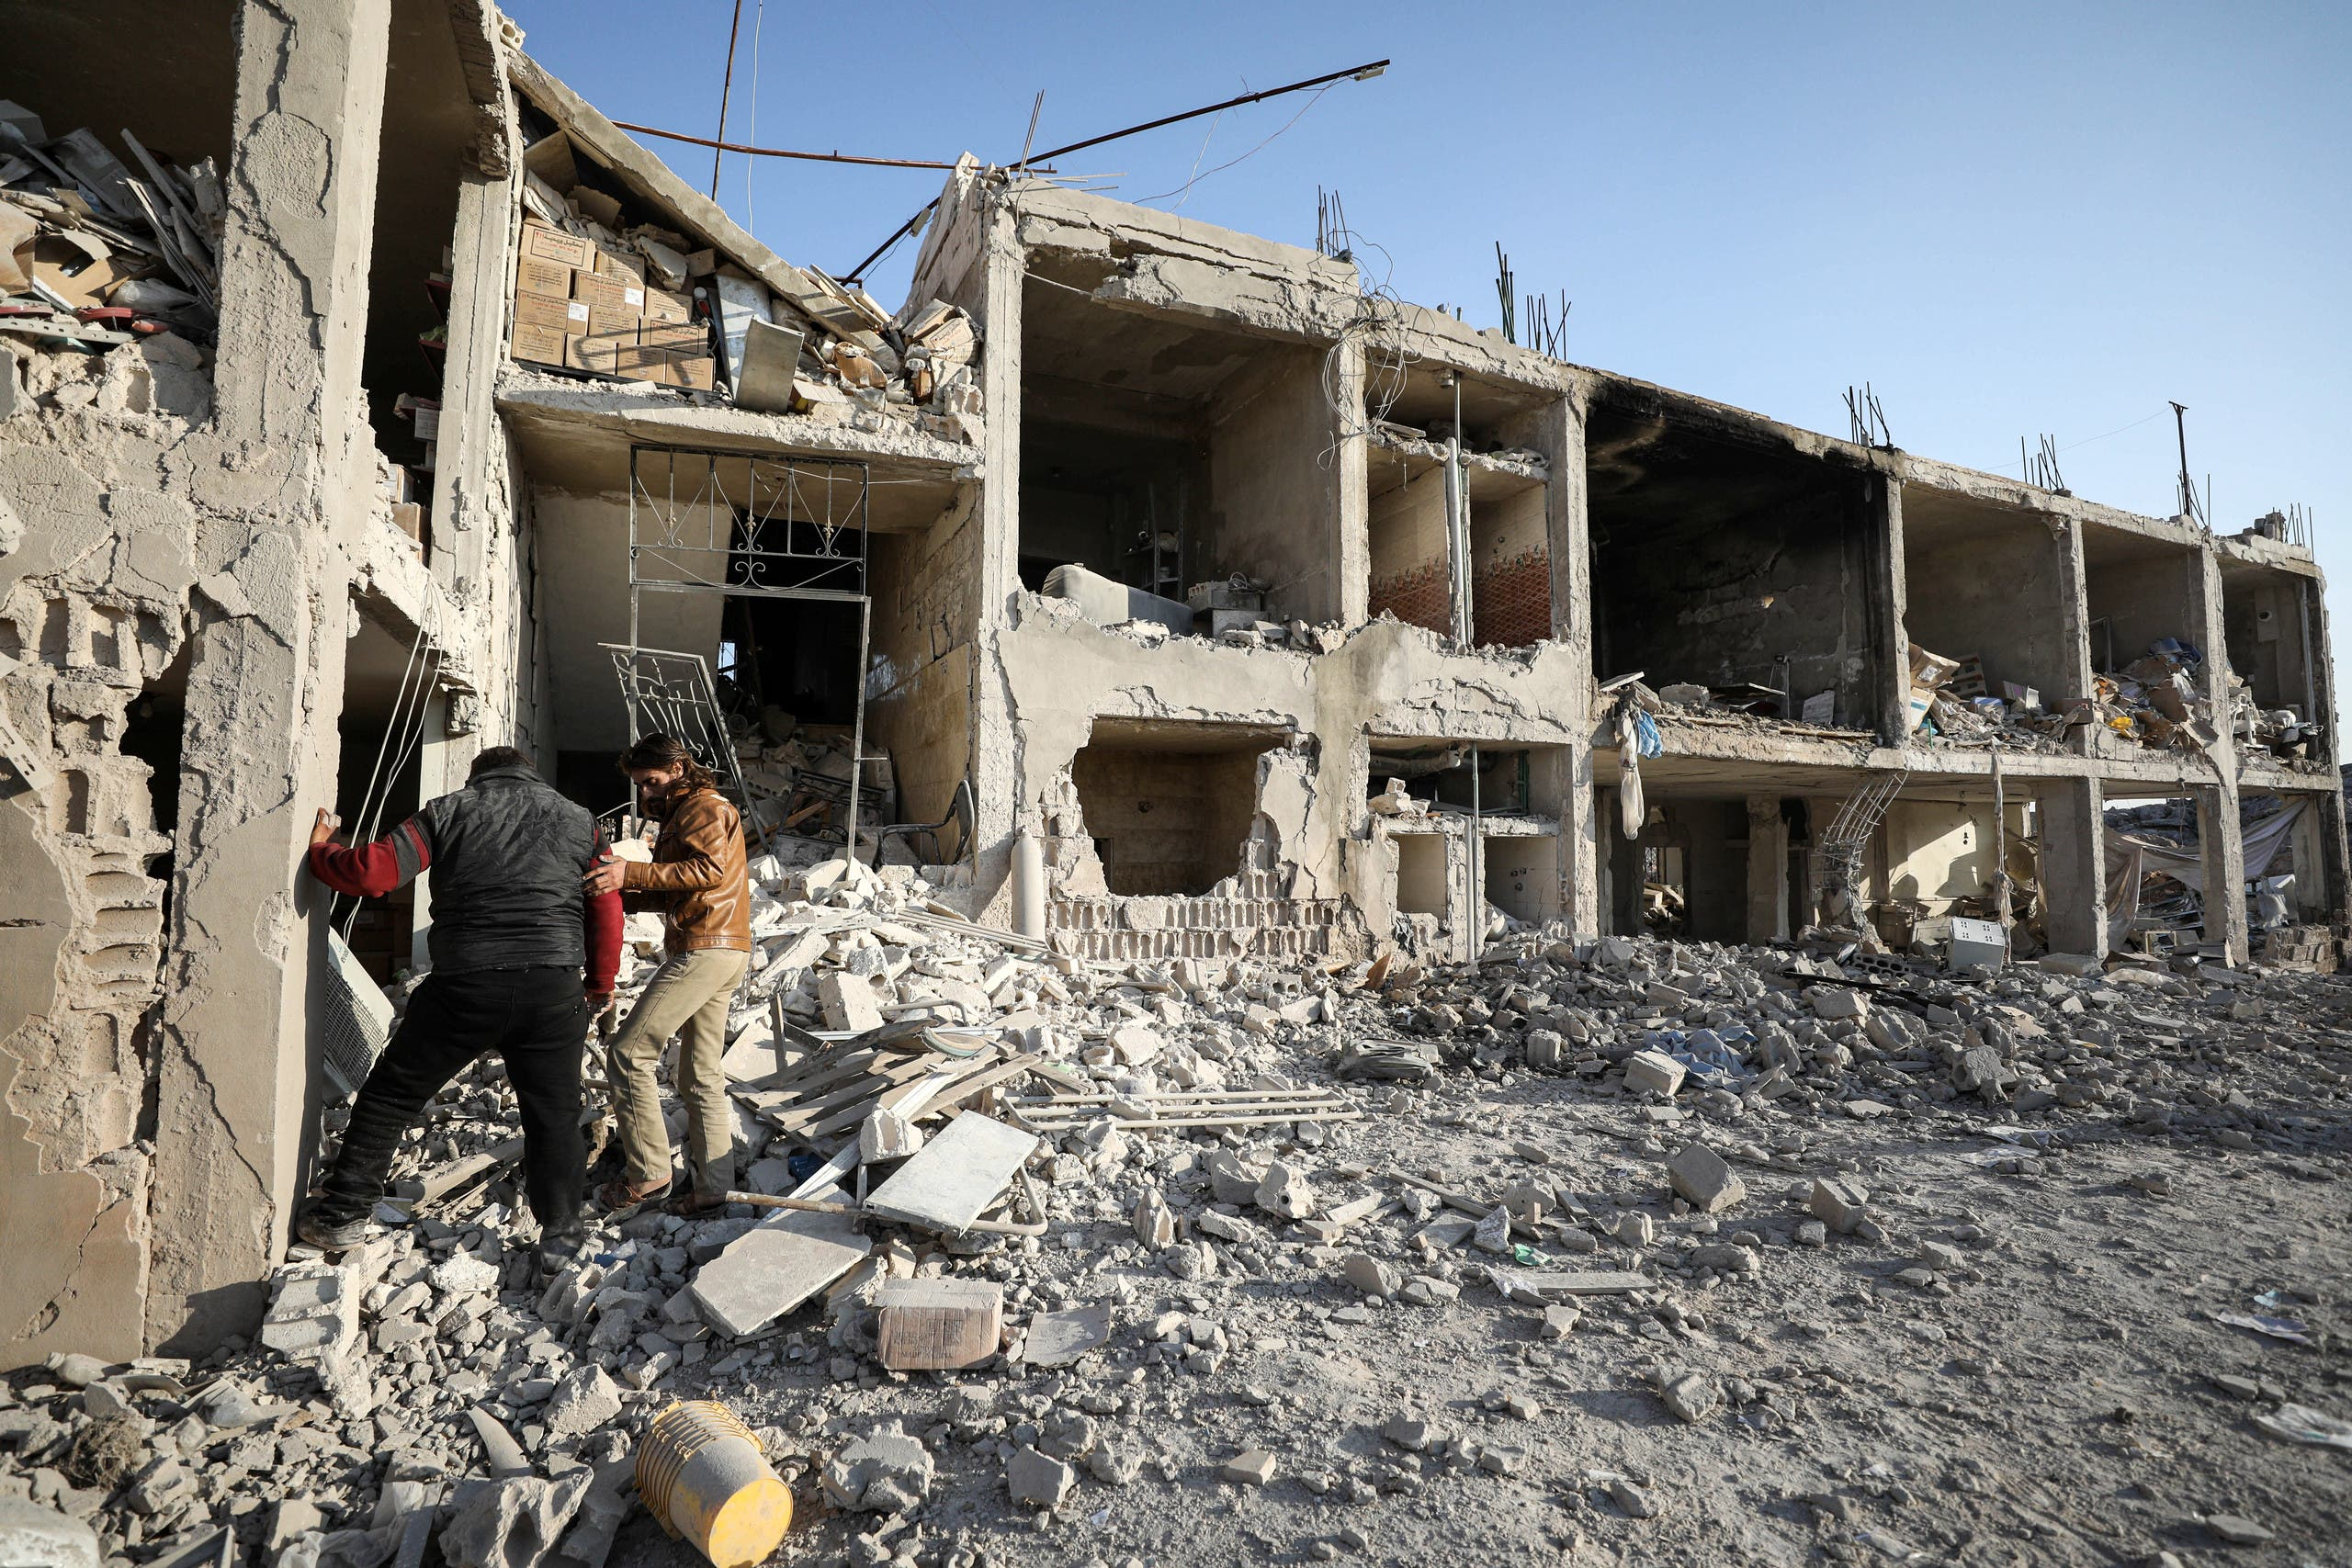 Men inspect the rubble of a hospital that was reportedly hit by a reported air strike in the Syrian village of Shinan, about 30 kilometres south of Idlib in the northwestern Idlib province, on November 6, 2019.